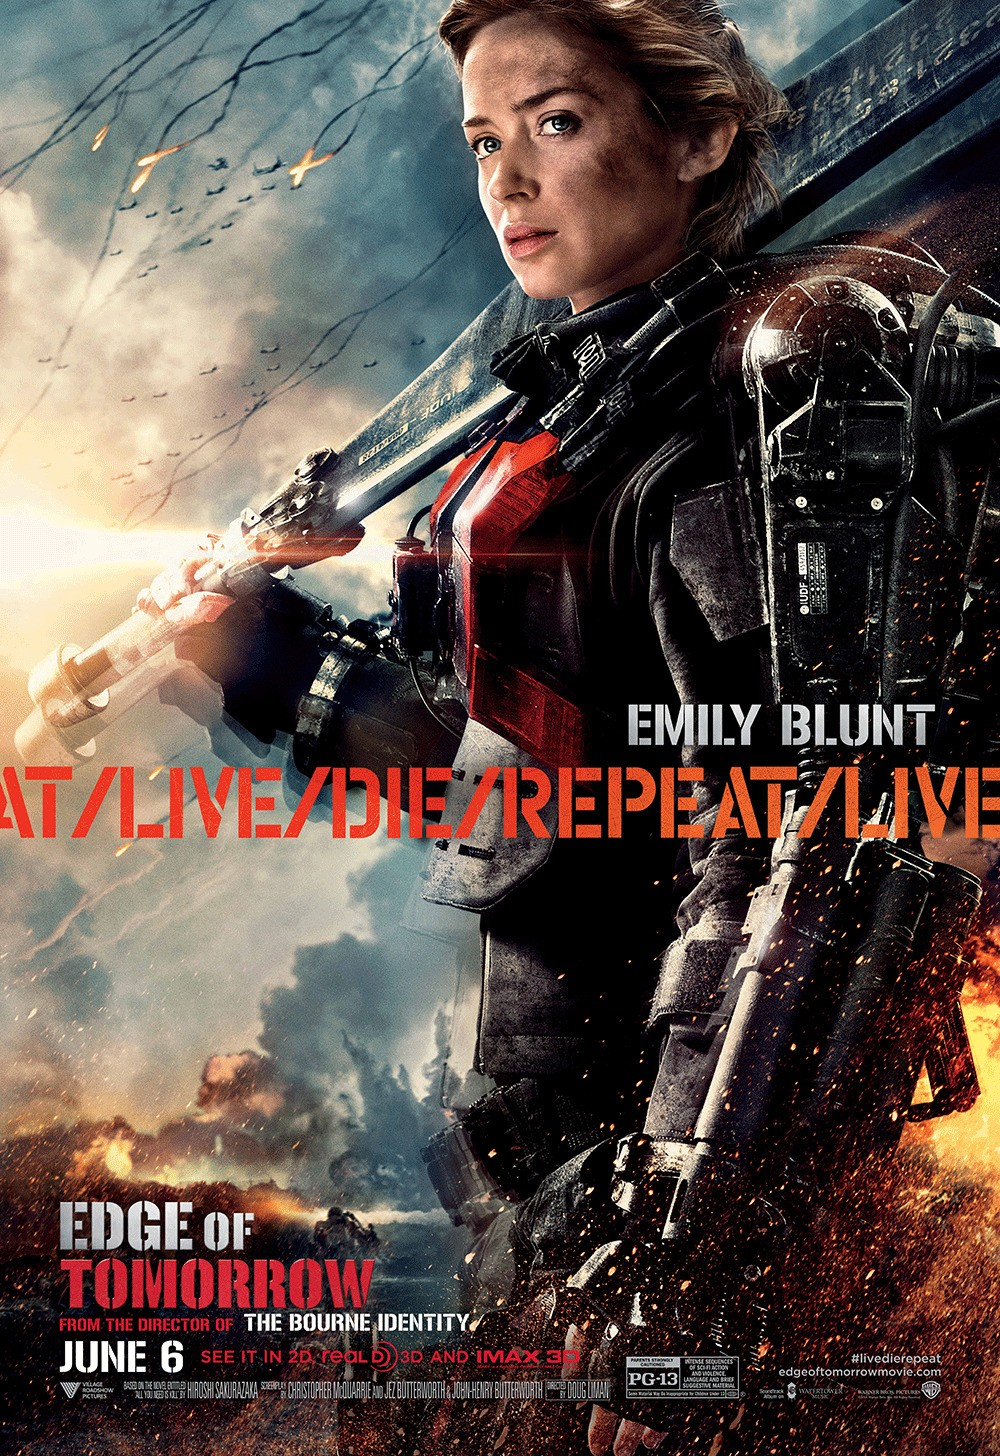 Edge-of-Tomorrow_Emily Blunt02.jpg